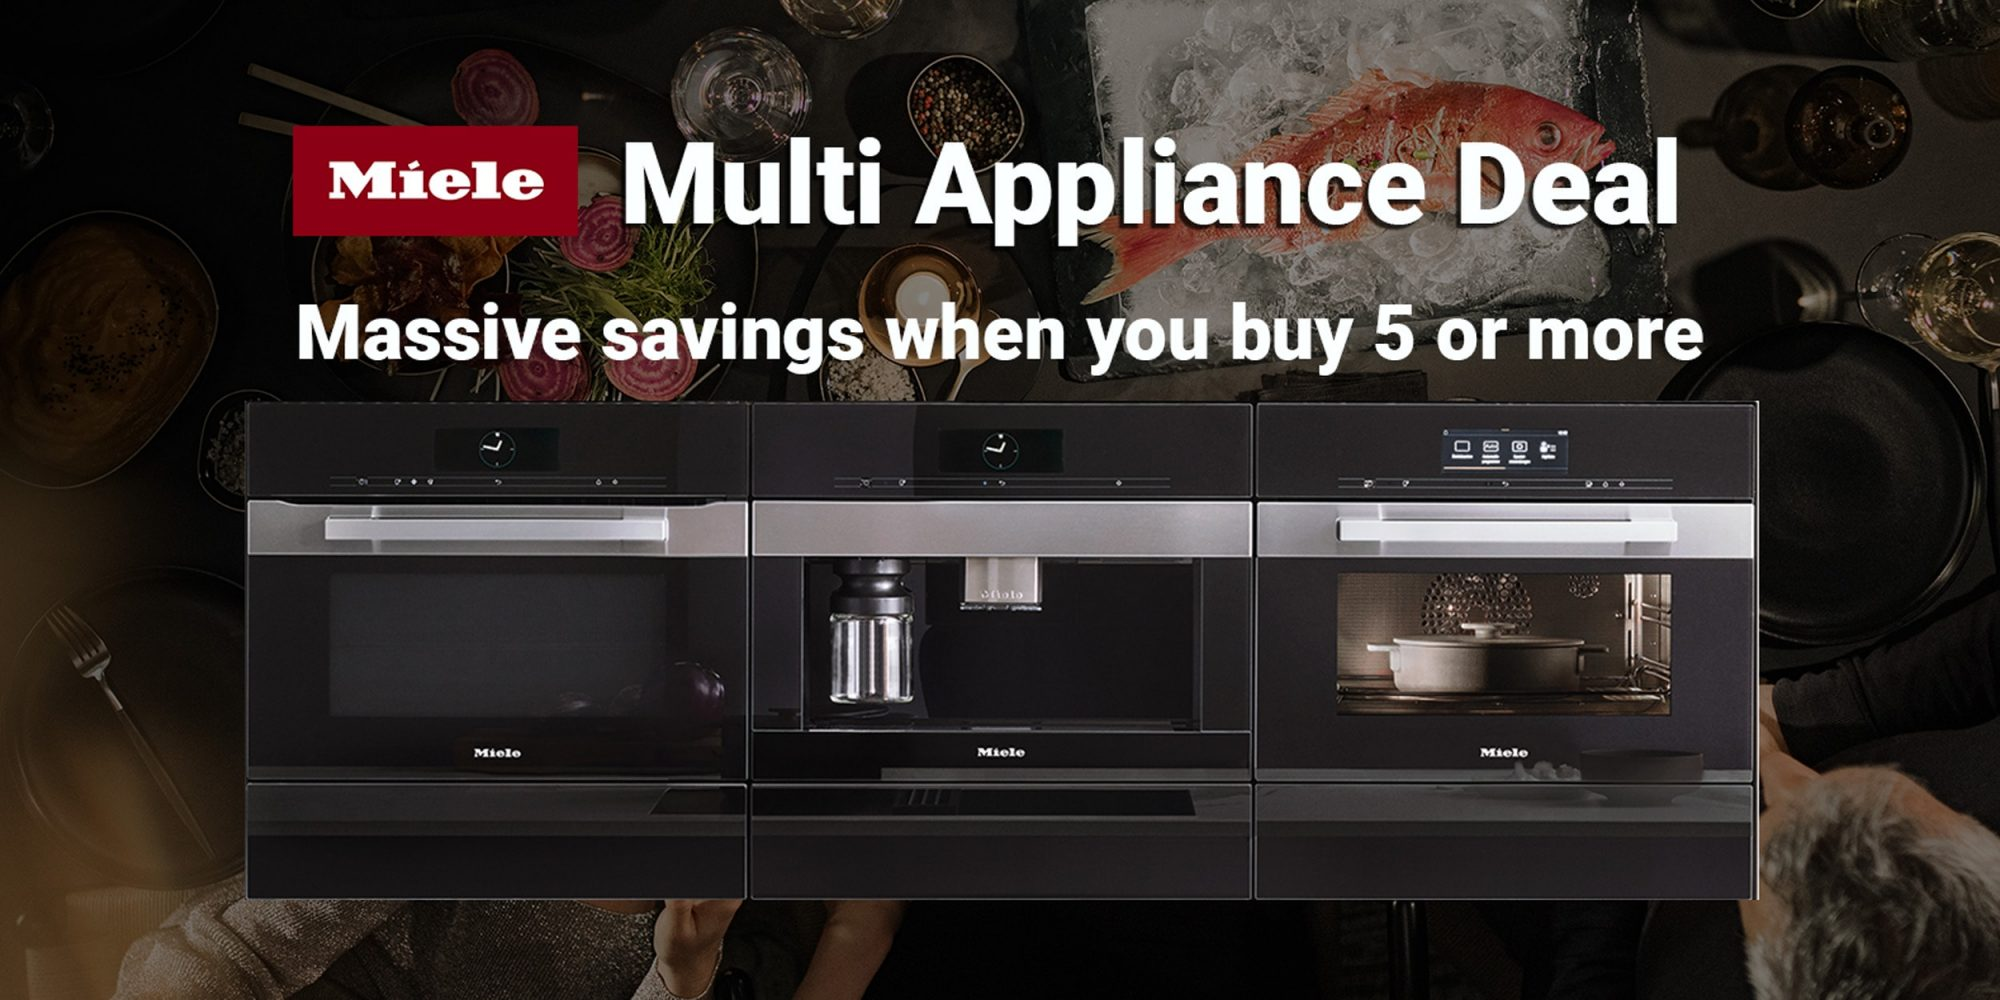 DEALS OF THE WEEK – MIELE MULTI APPLIANCE DEAL